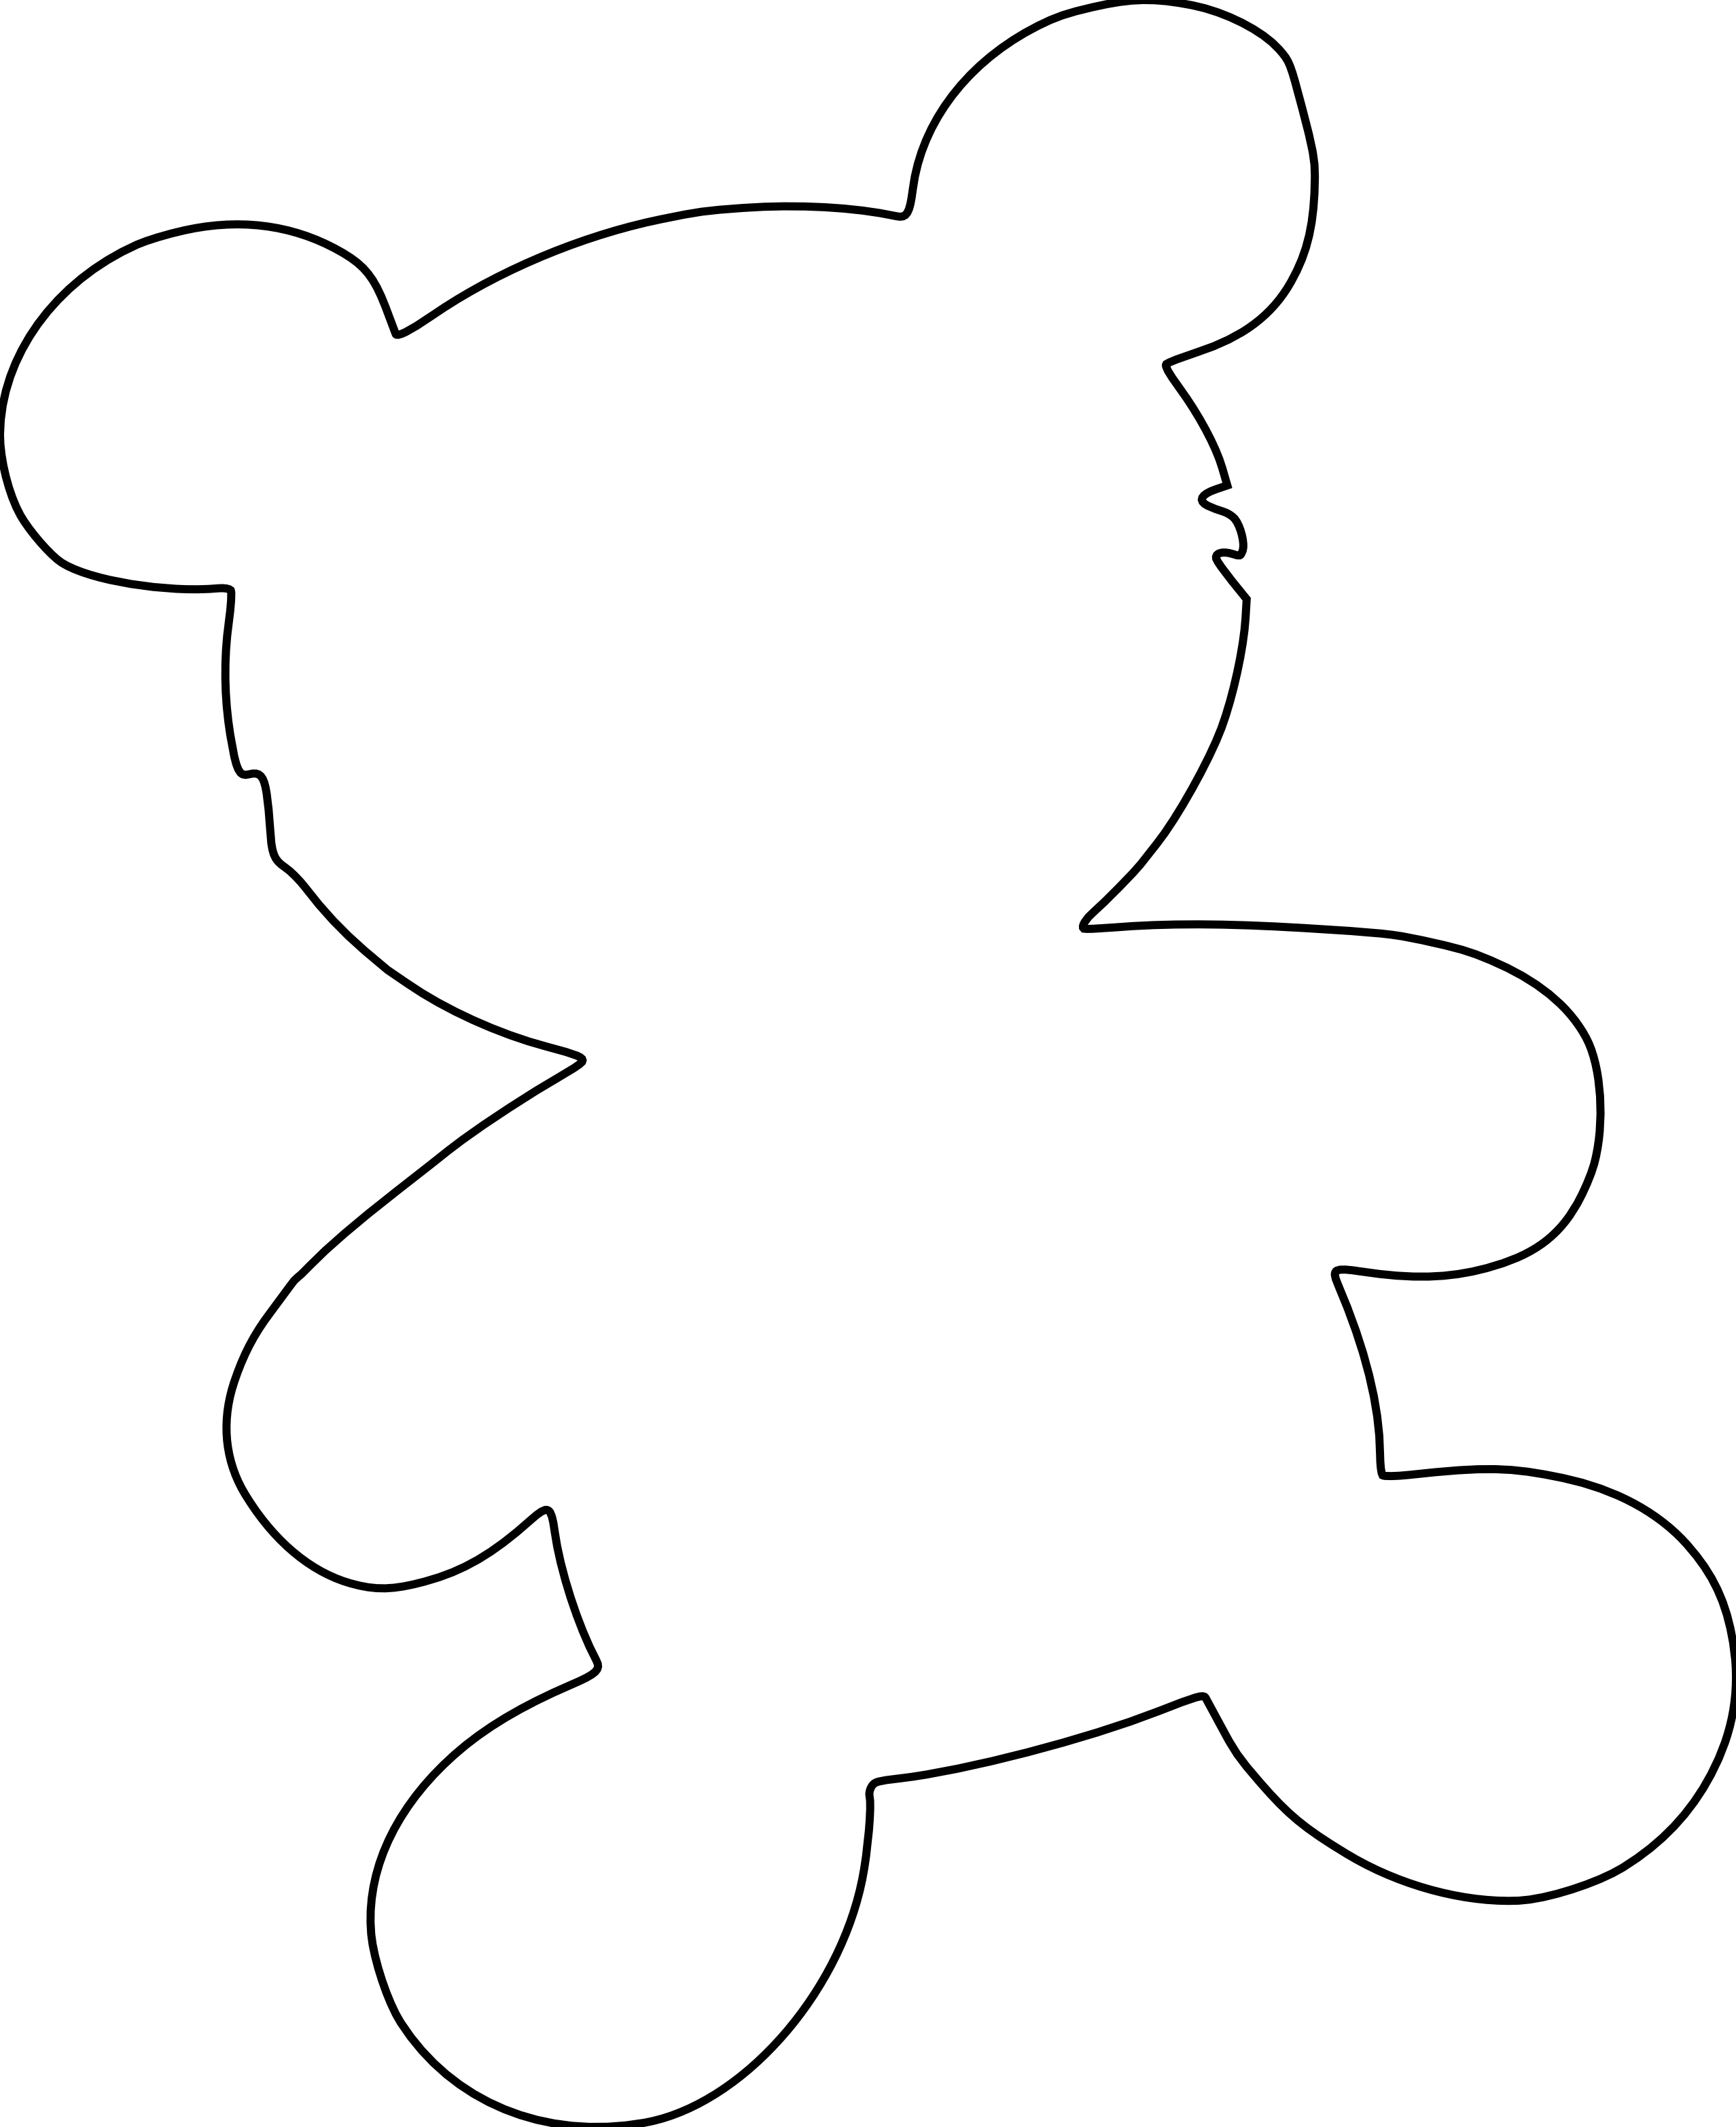 Teddy bear outline clipart